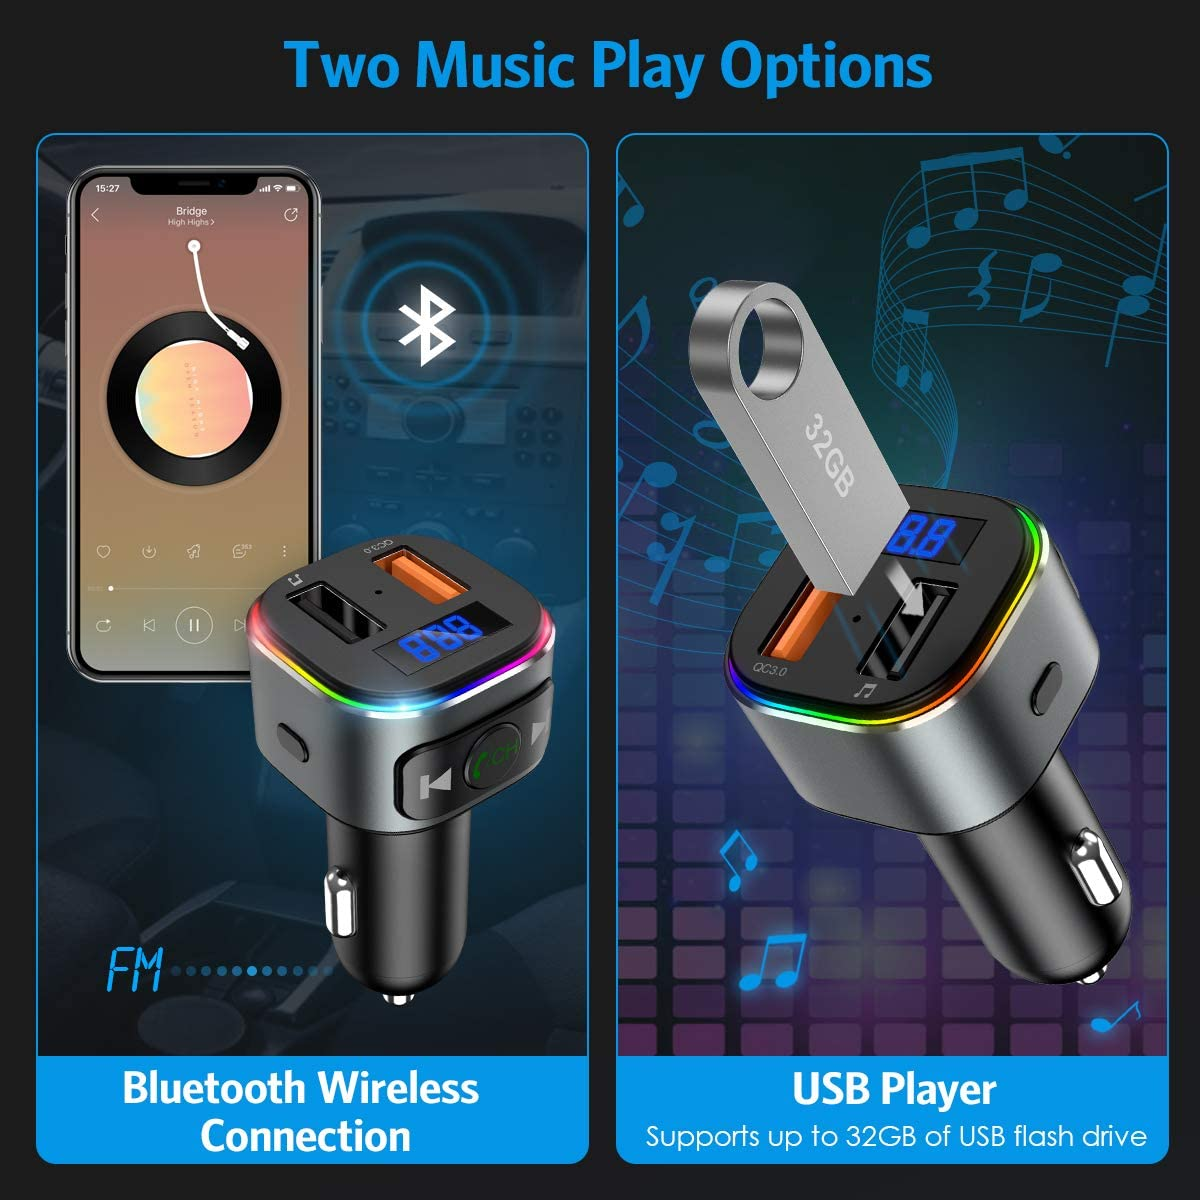 V5.0 Bluetooth FM Transmitter for Car 2020 Upgraded New Bluetooth Car Adapter QC3.0 Dual USB Ports Ridao Adaprer Support USB Drive 7 RGB LED Backlit Music Player Car Kit with Hands-Free Calling